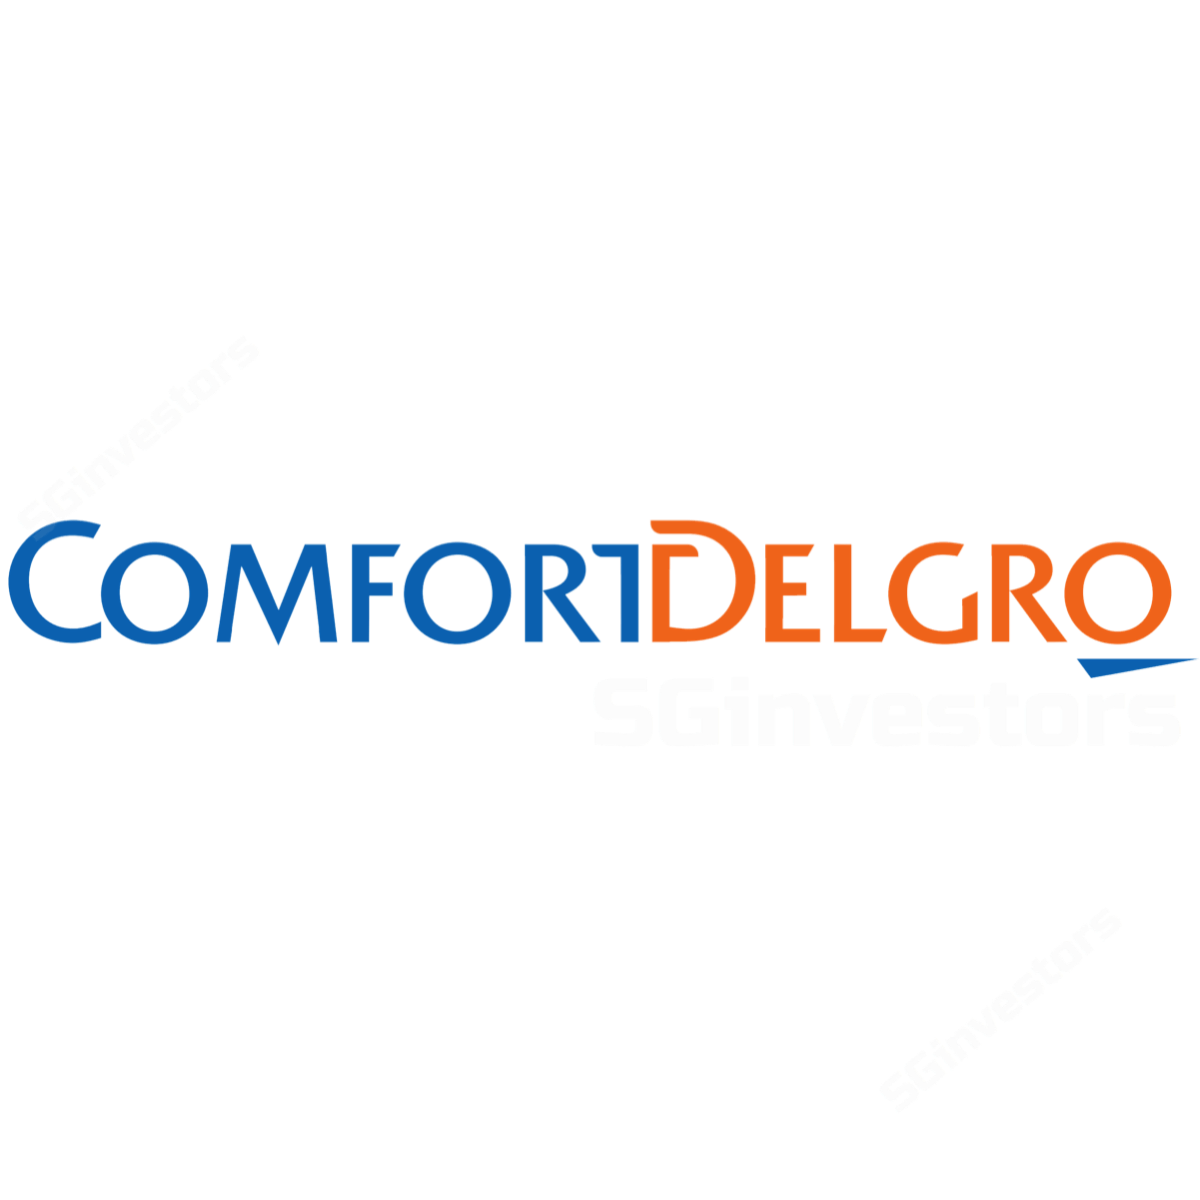 ComfortDelGro (CD SP) - DBS Vickers 2018-03-26: Benefits If Competition Returns To Normalcy